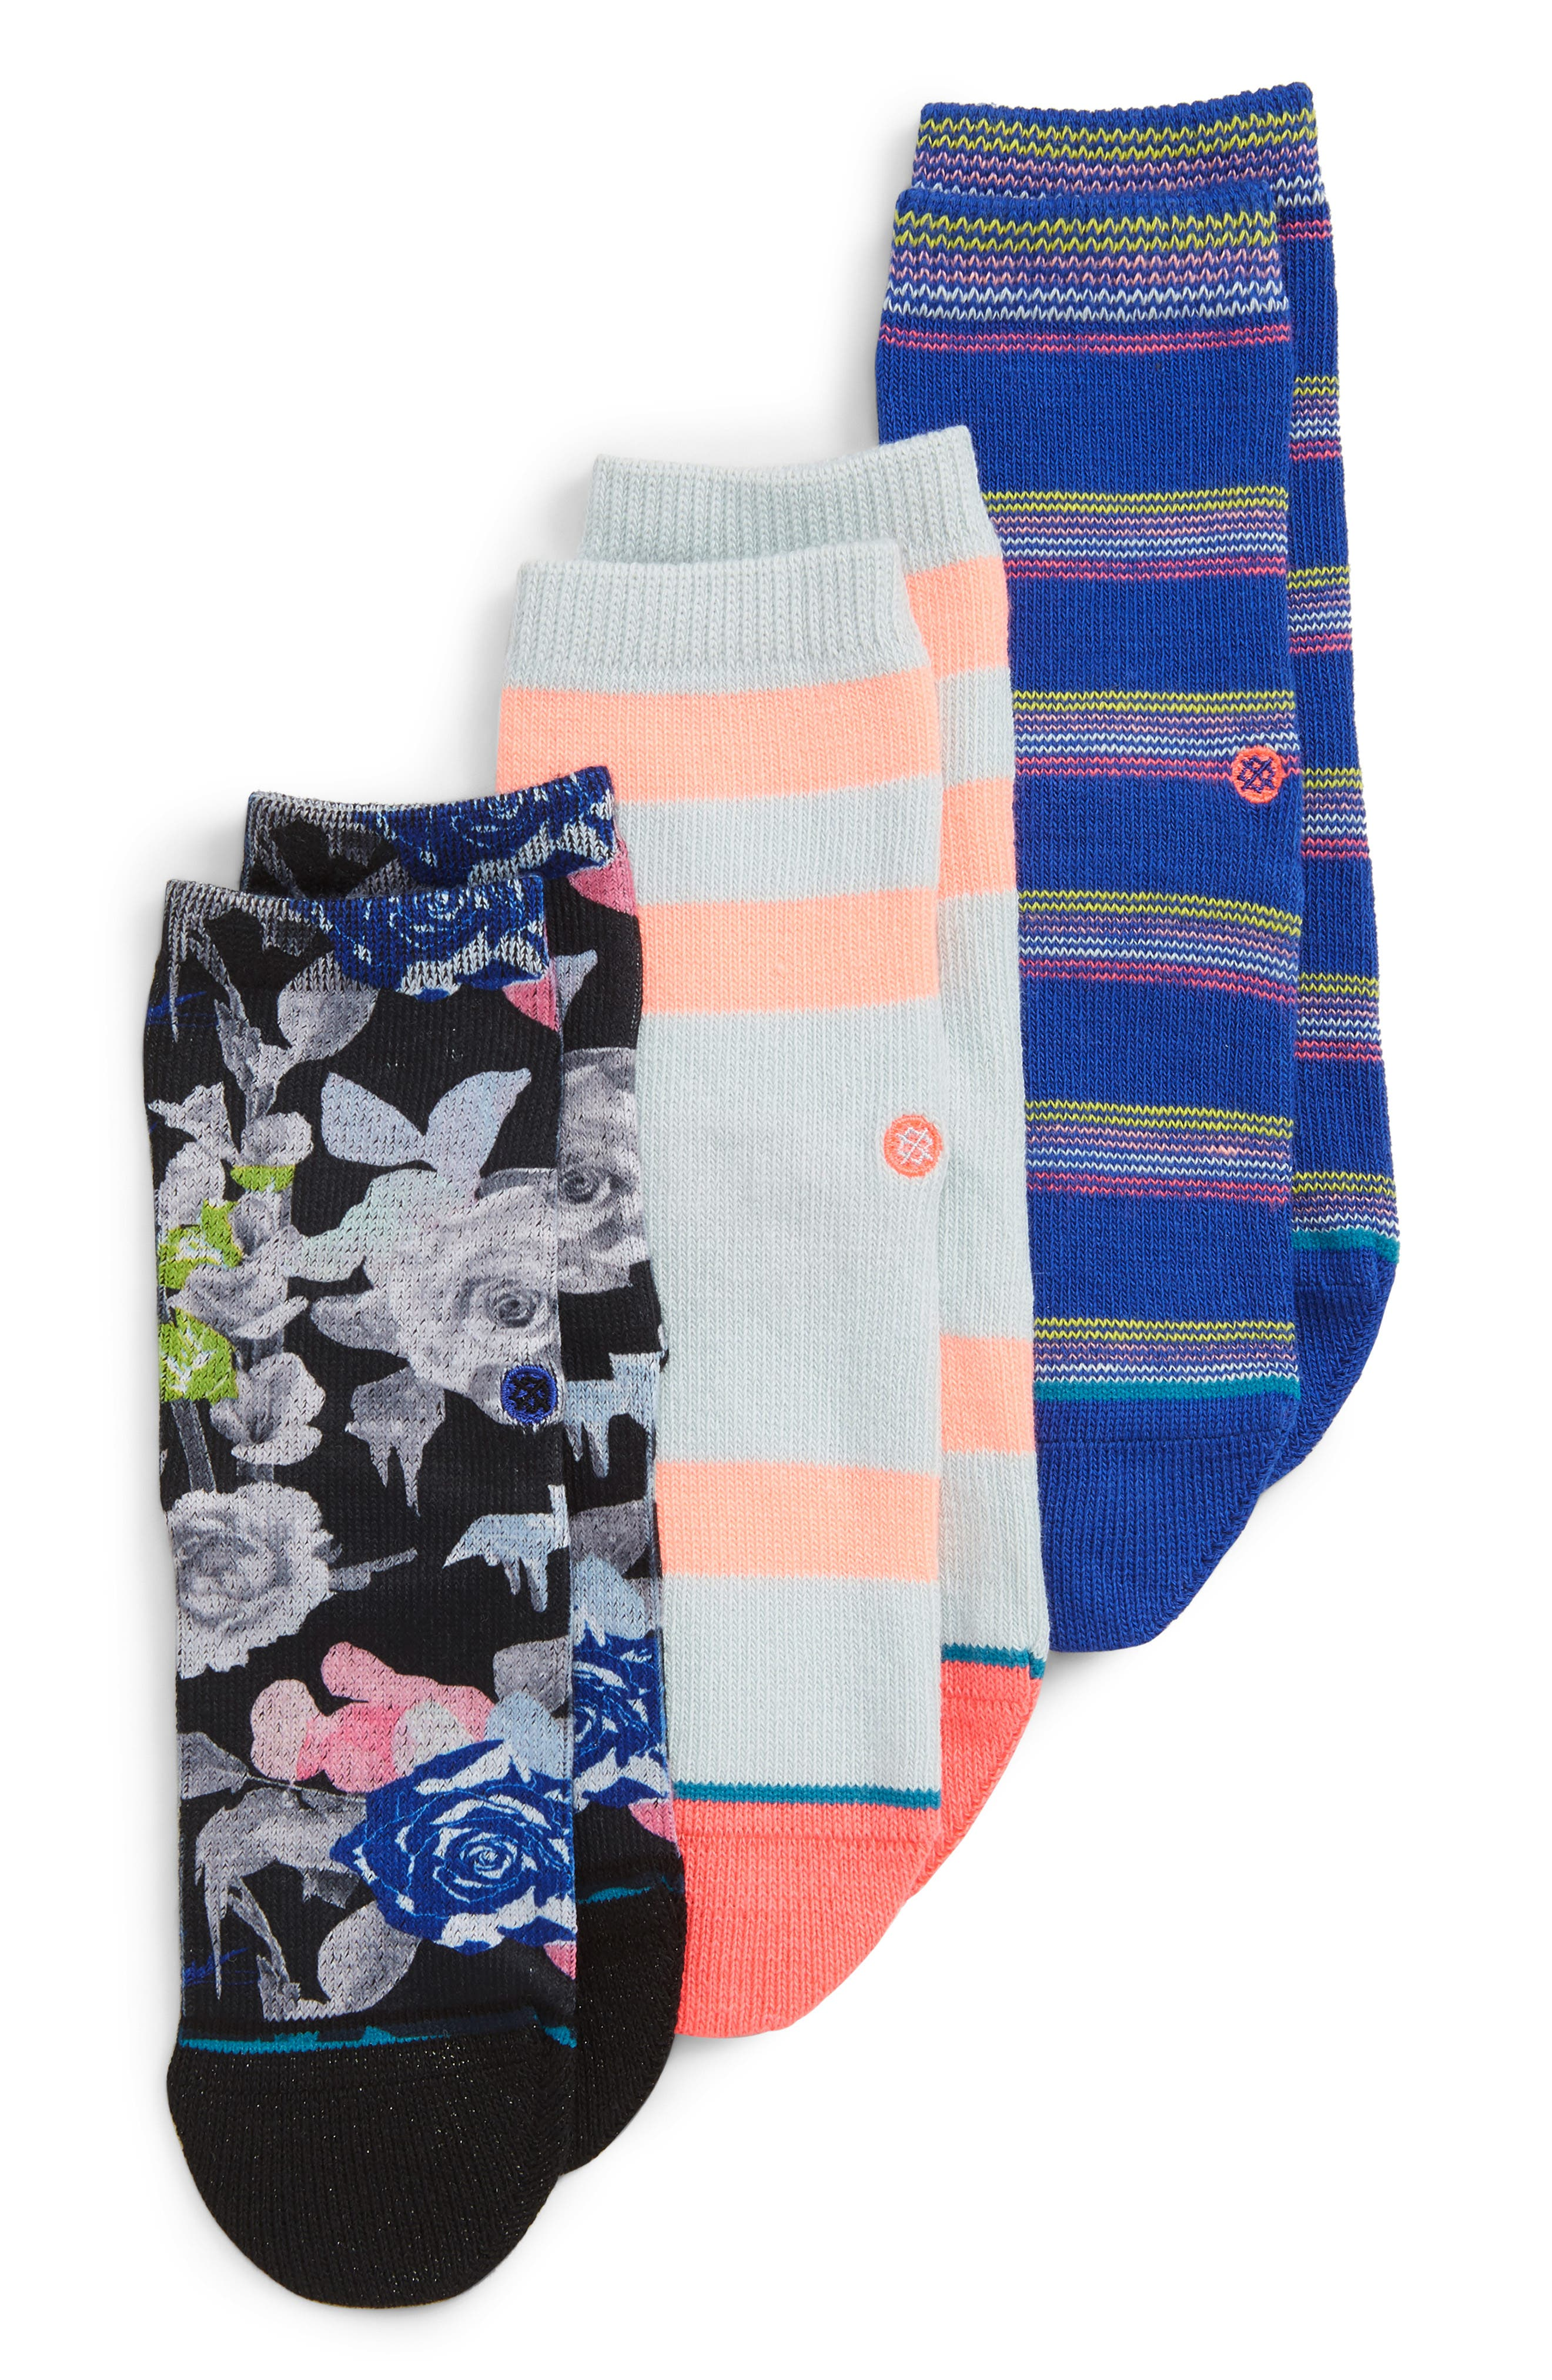 Toddler Girls Stance Le Fleur 3Pack Ankle Socks Size 24years  Blue